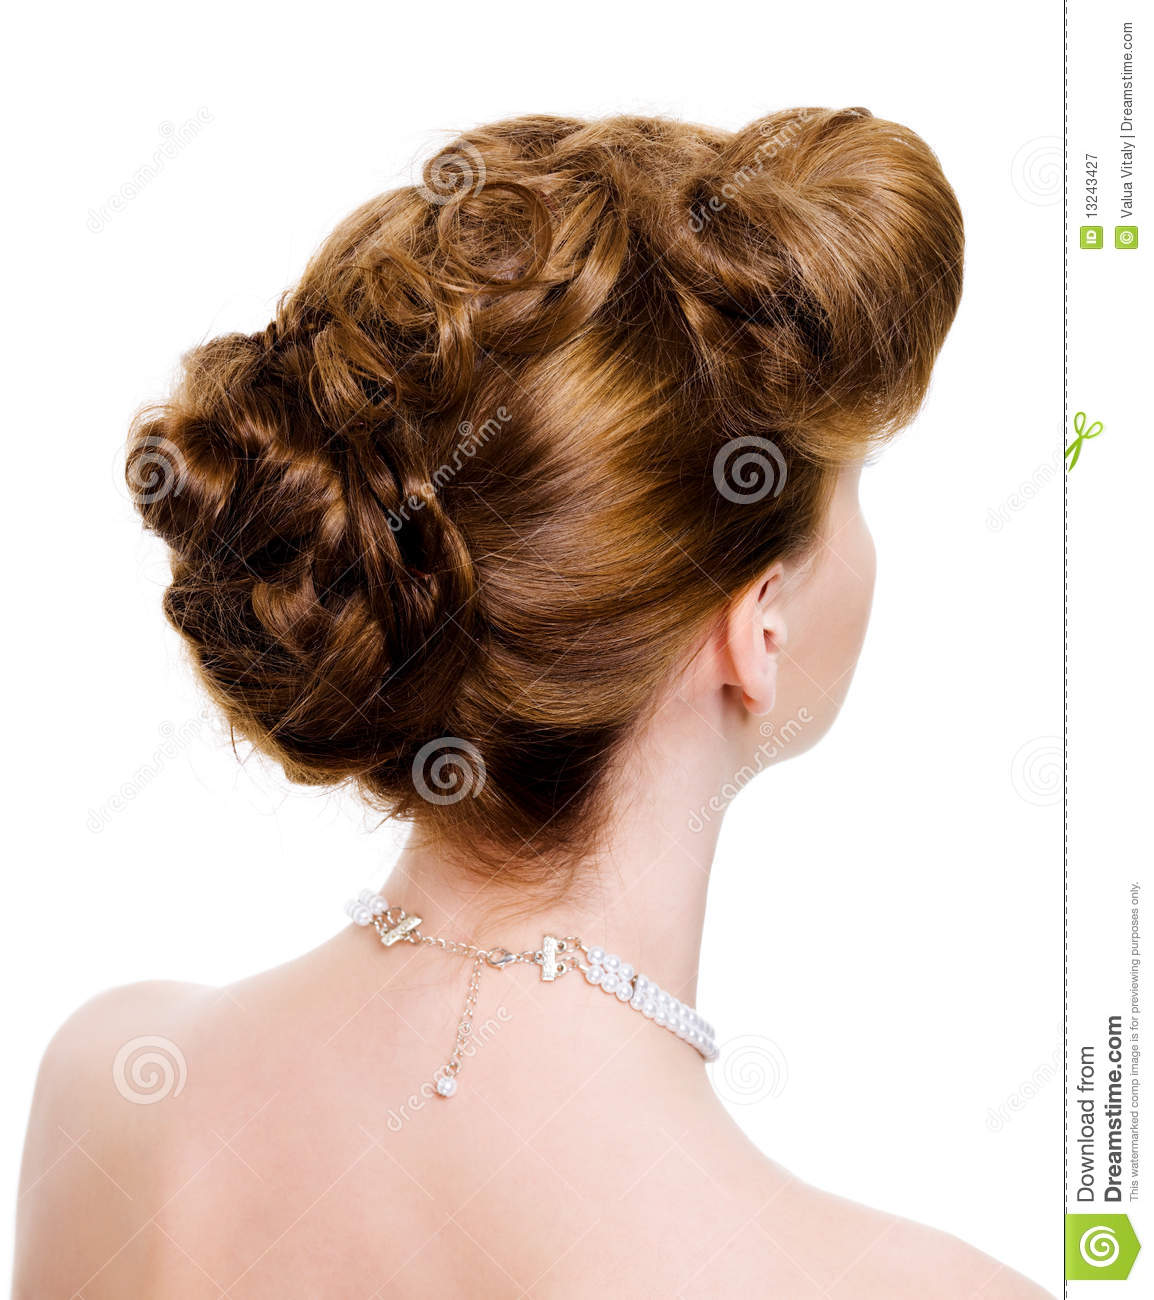 bridal hairstyle free: humidity free bridal hairstyles for a